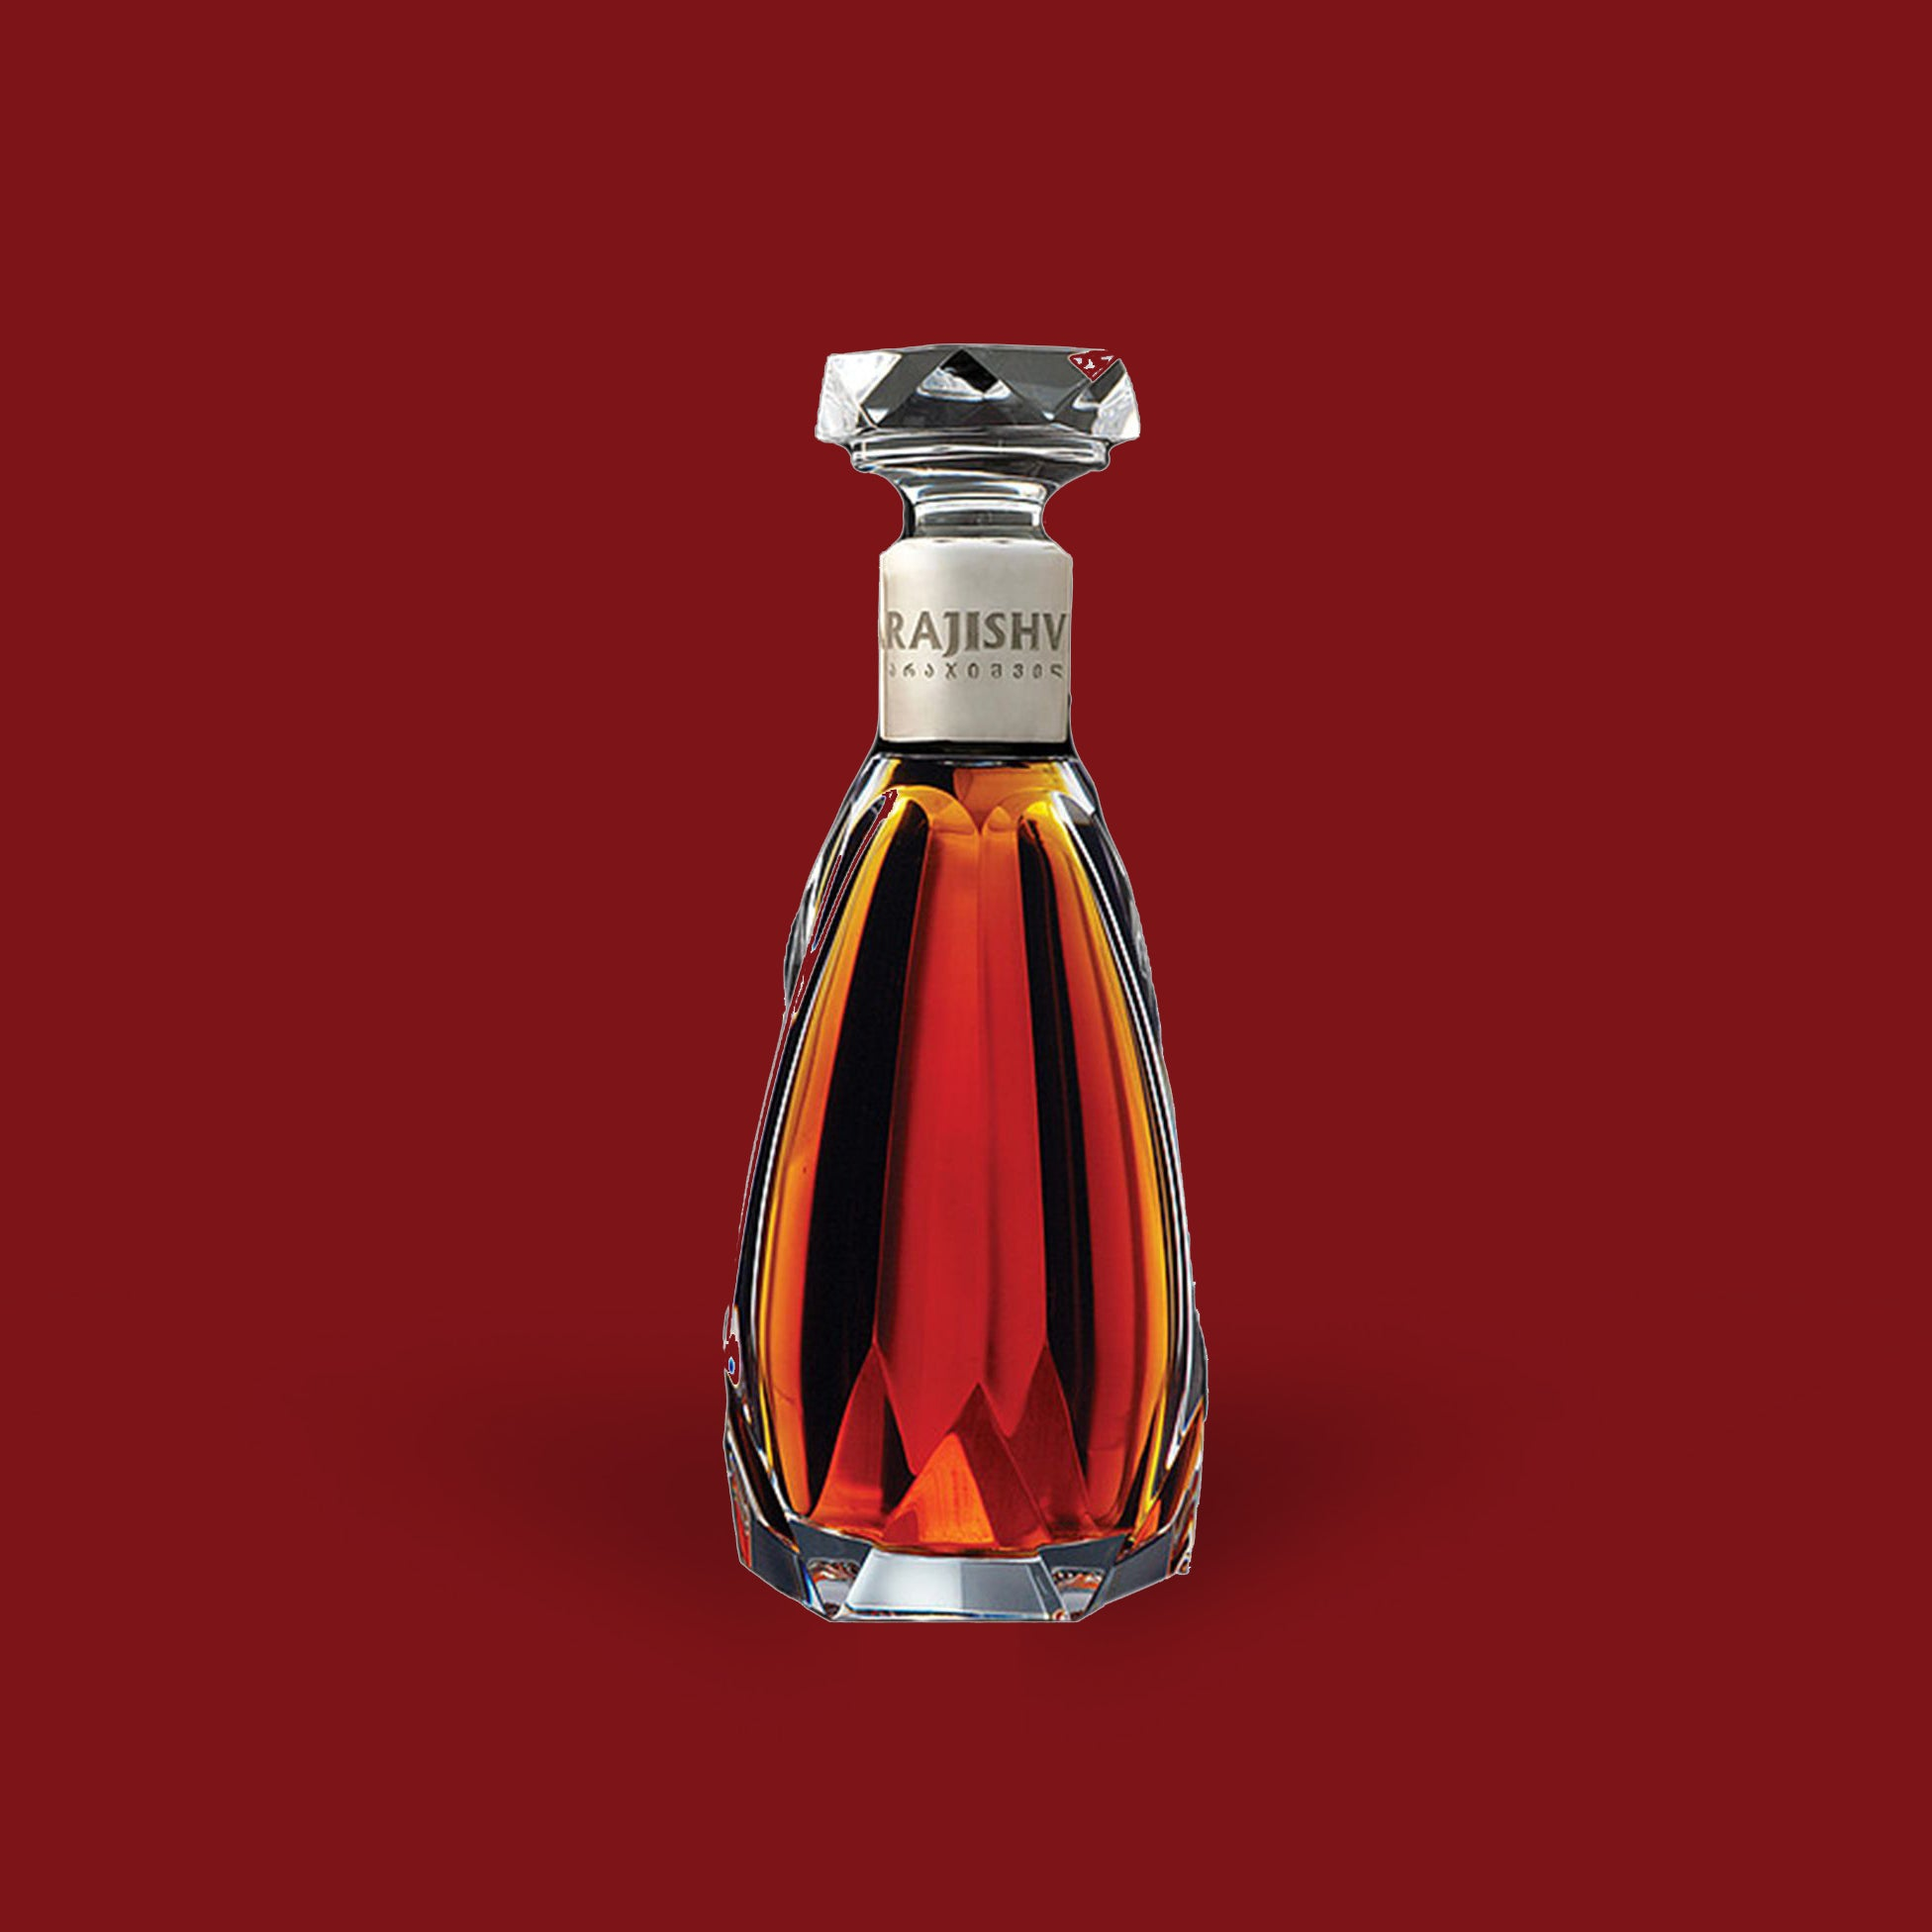 Sarajishvili - 20th Century Brandy